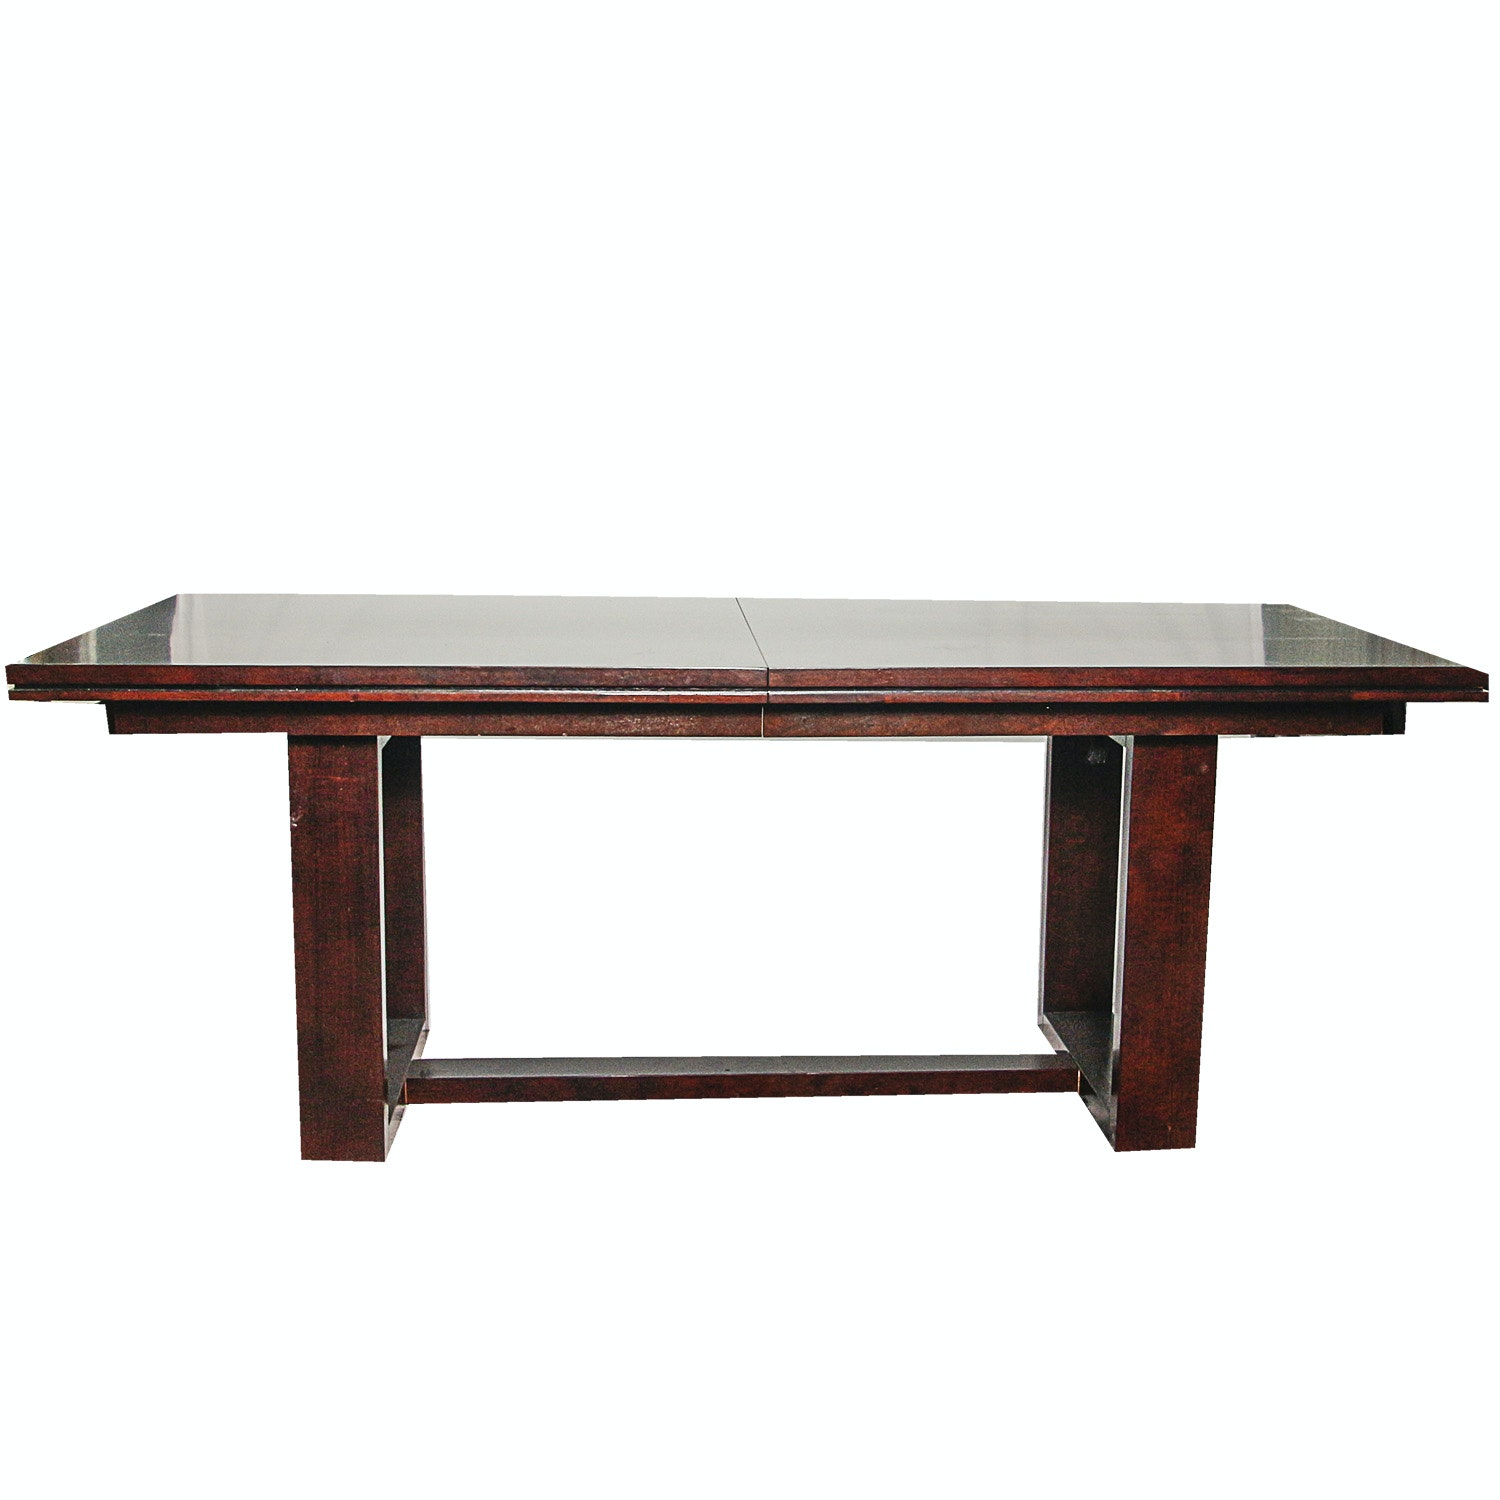 "Cherry Finished ""Belaire"" Dining Table by O-Palier"